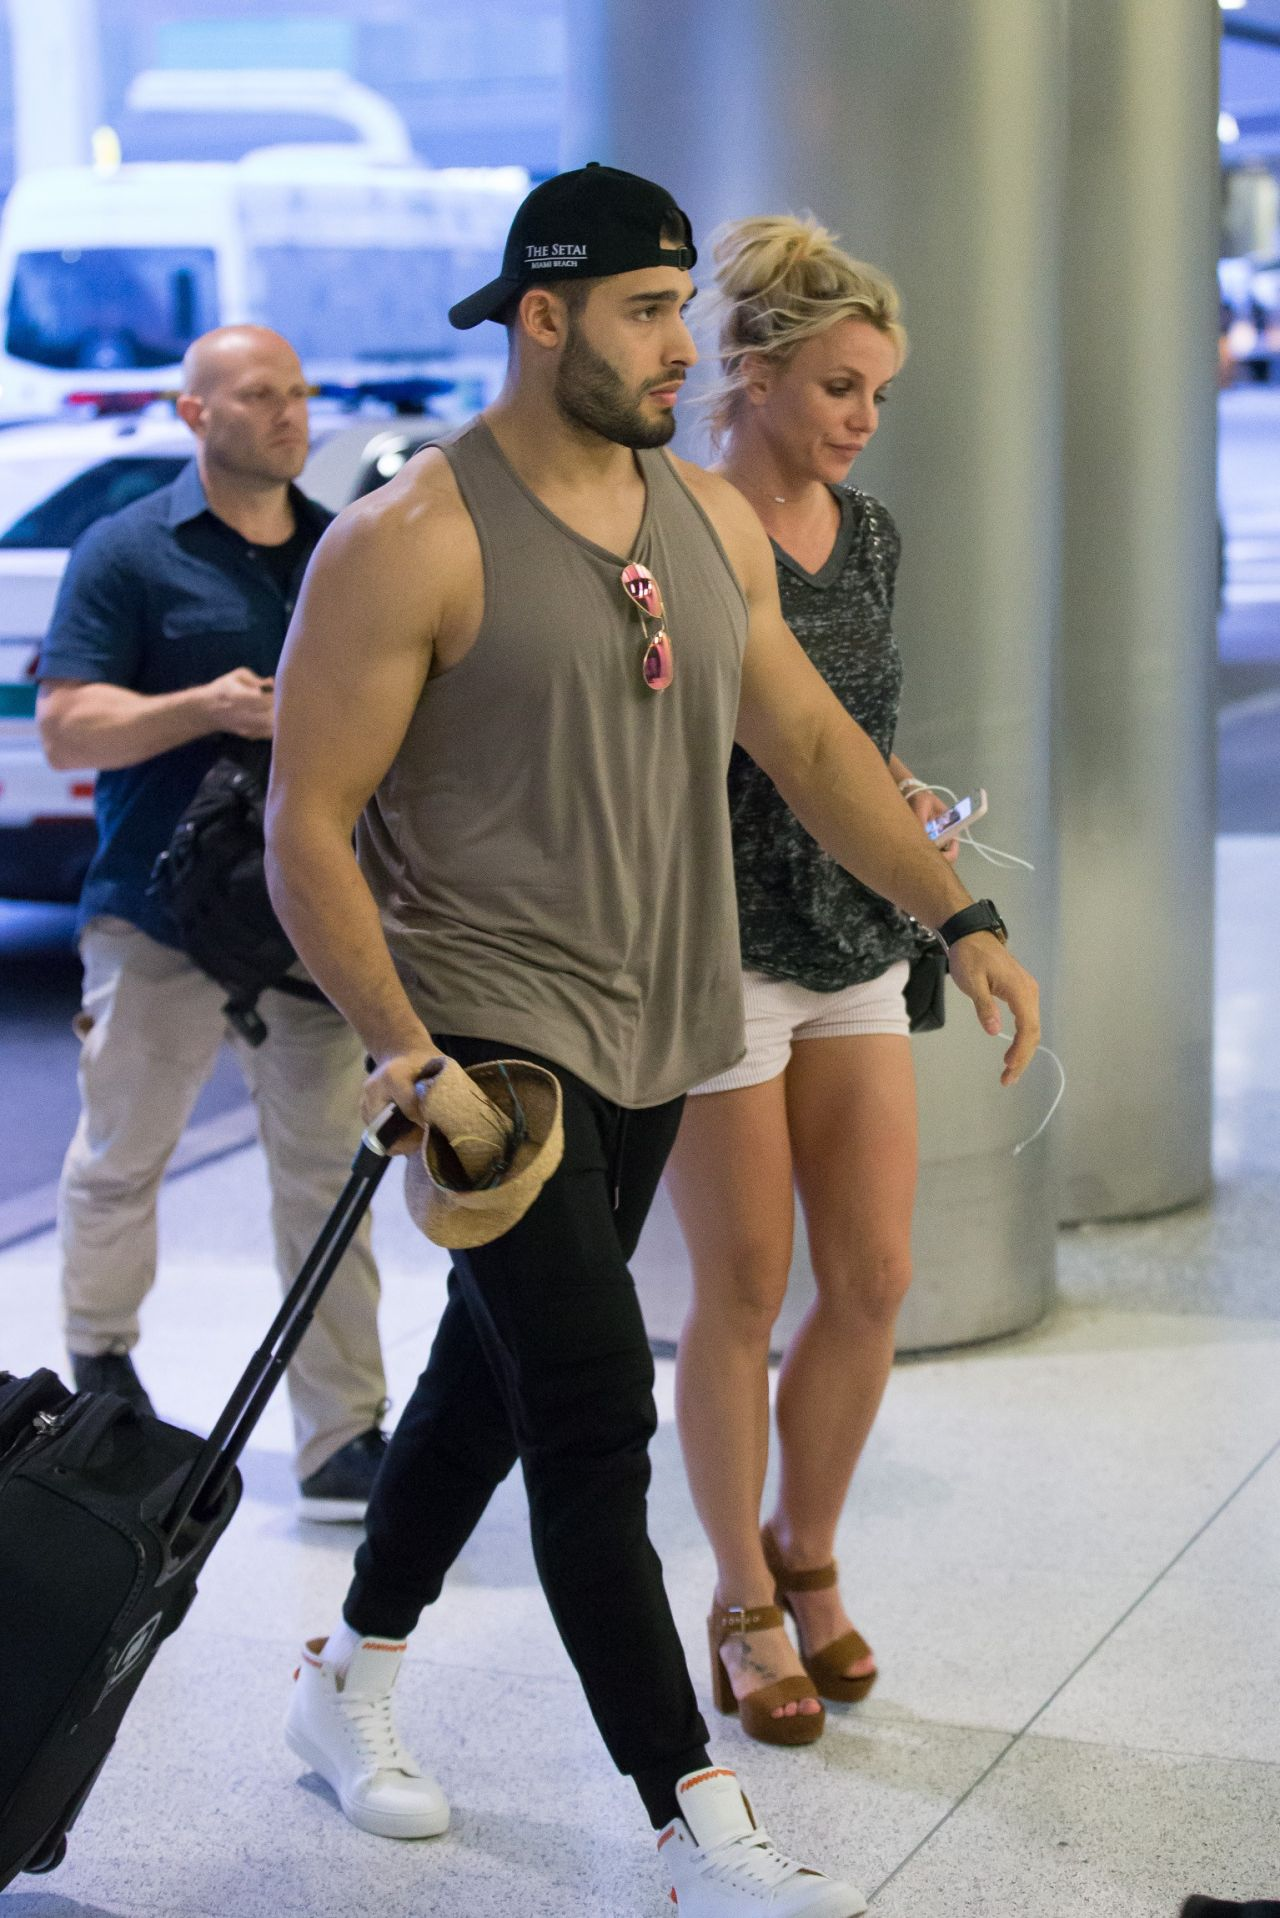 britney-spears-and-boyfriend-sam-asghari-airport-in-miami-06-10-2018-2.jpg